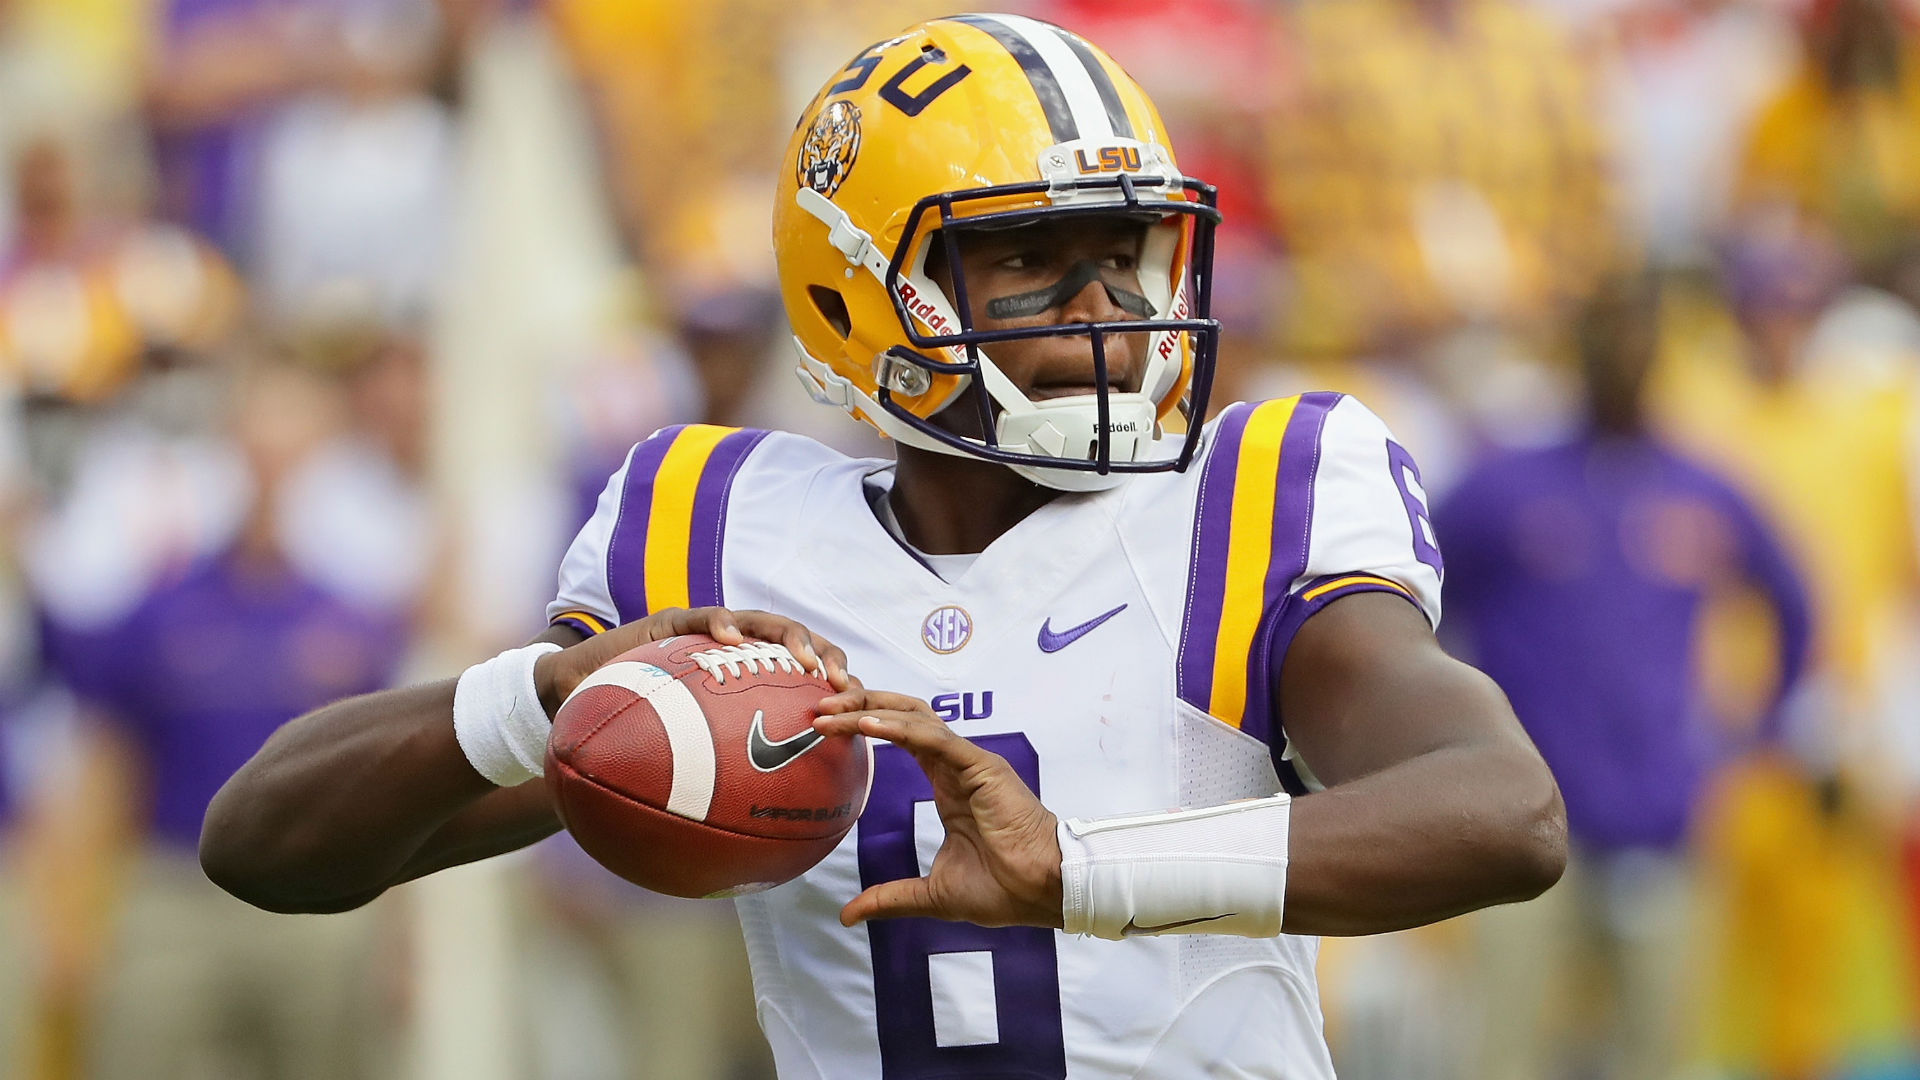 Former LSU starting quarterback Brandon Harris to transfer